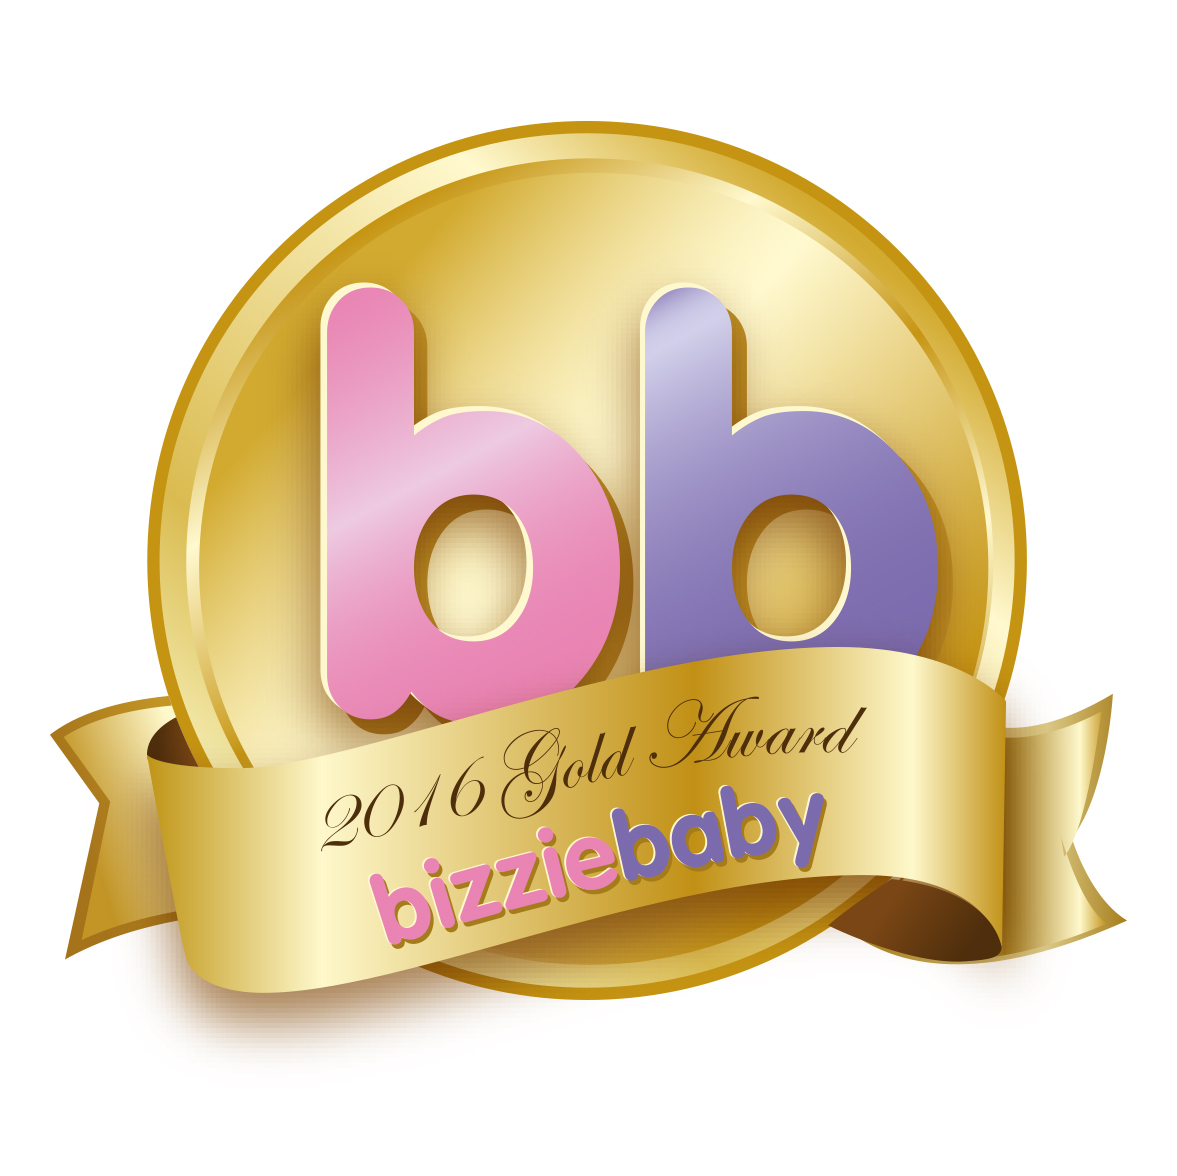 bb awards logo gold 코모토모